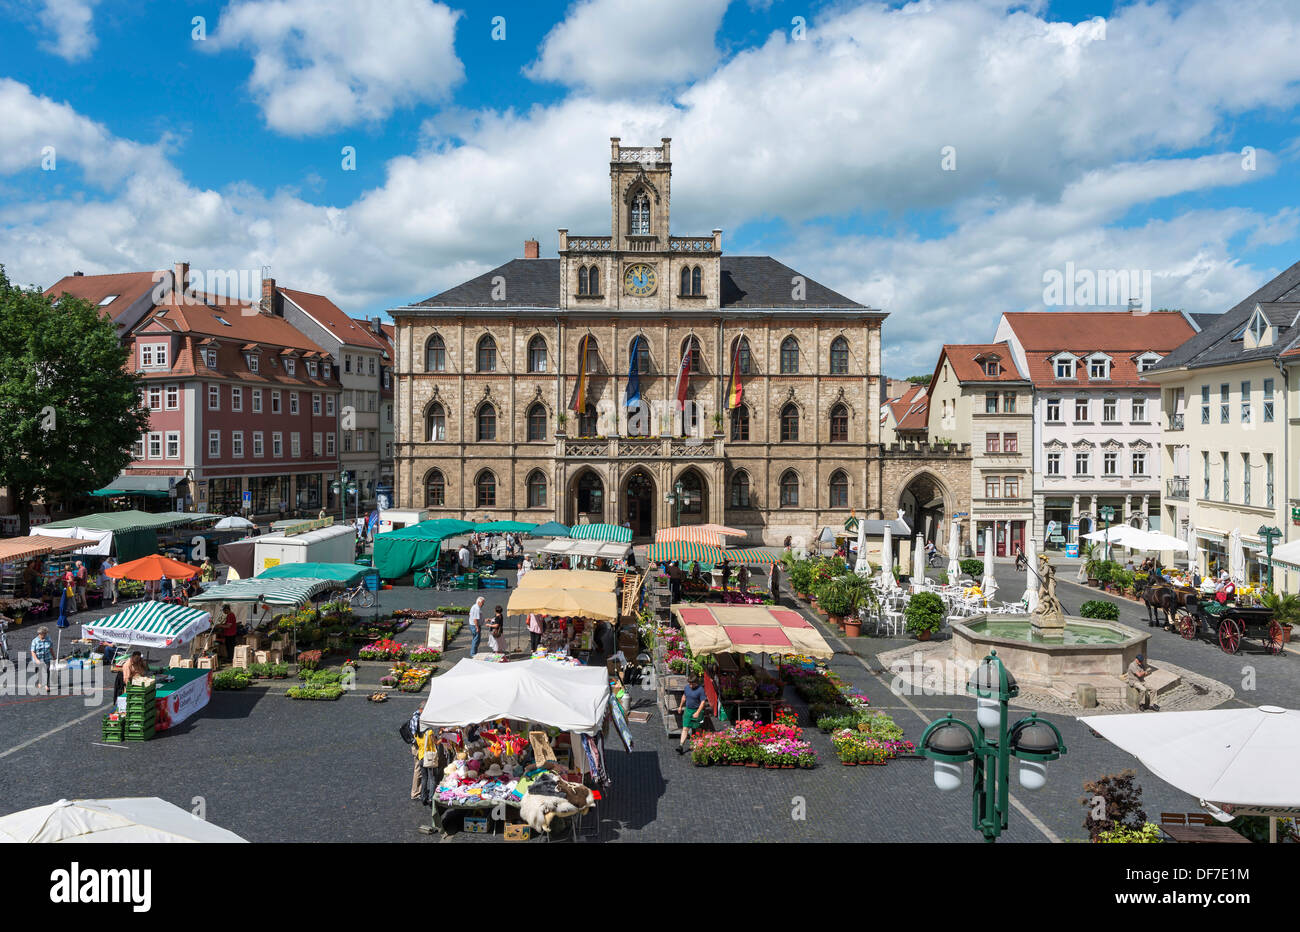 Market square with weekly market, Town Hall at back, Weimar, Thuringia, Germany - Stock Image